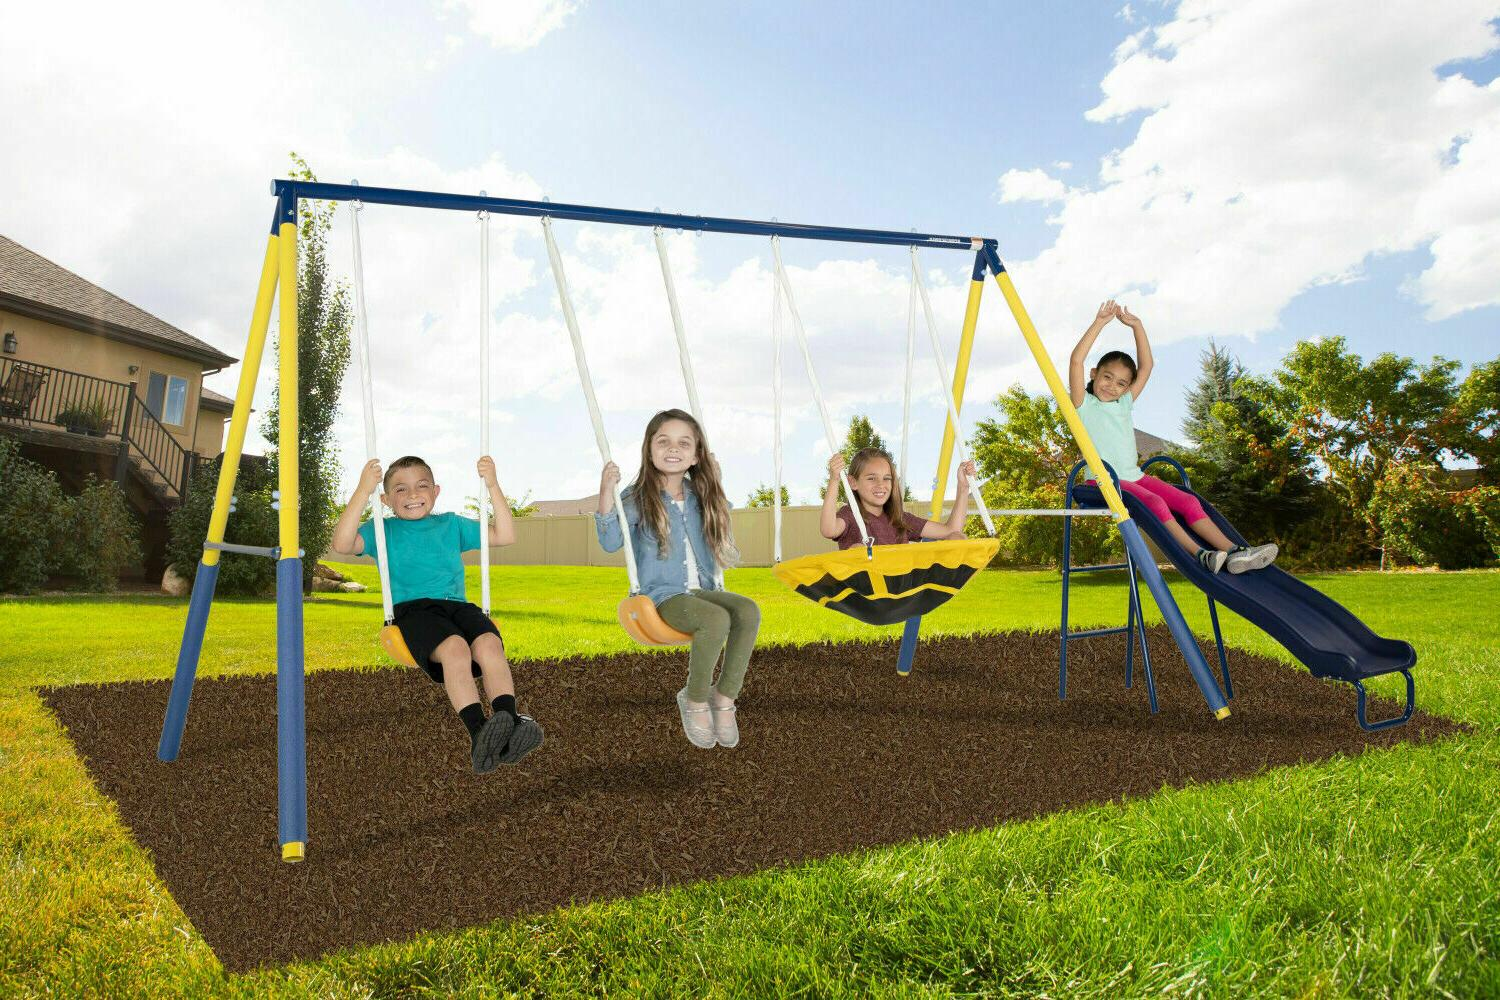 Sportspower Swing with Swings, Saucer Swing and Slide